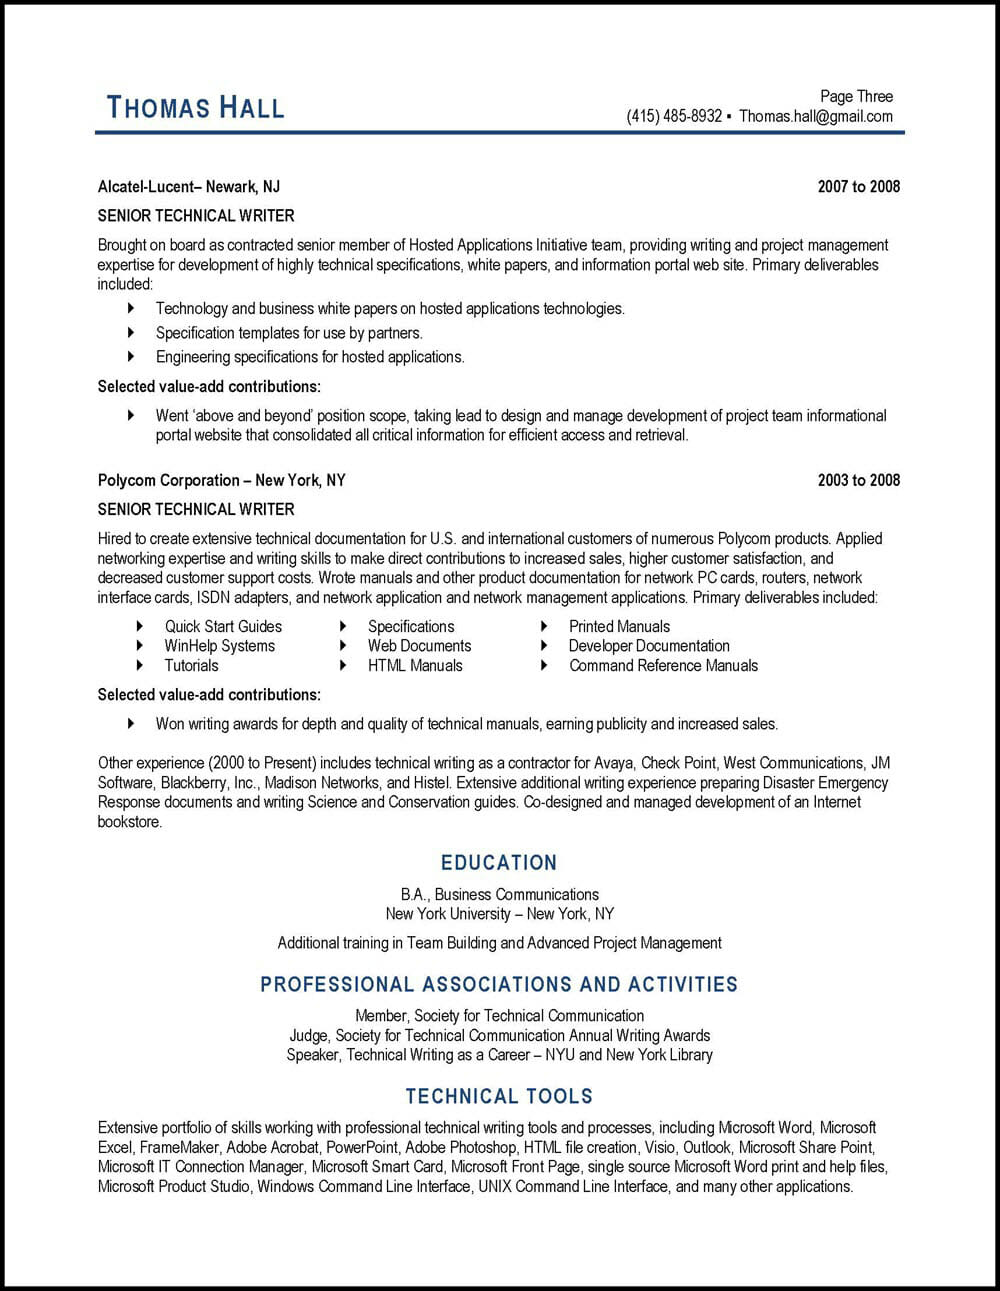 use resume writing service should you professional builder technical writer human Resume Professional Resume Builder Service